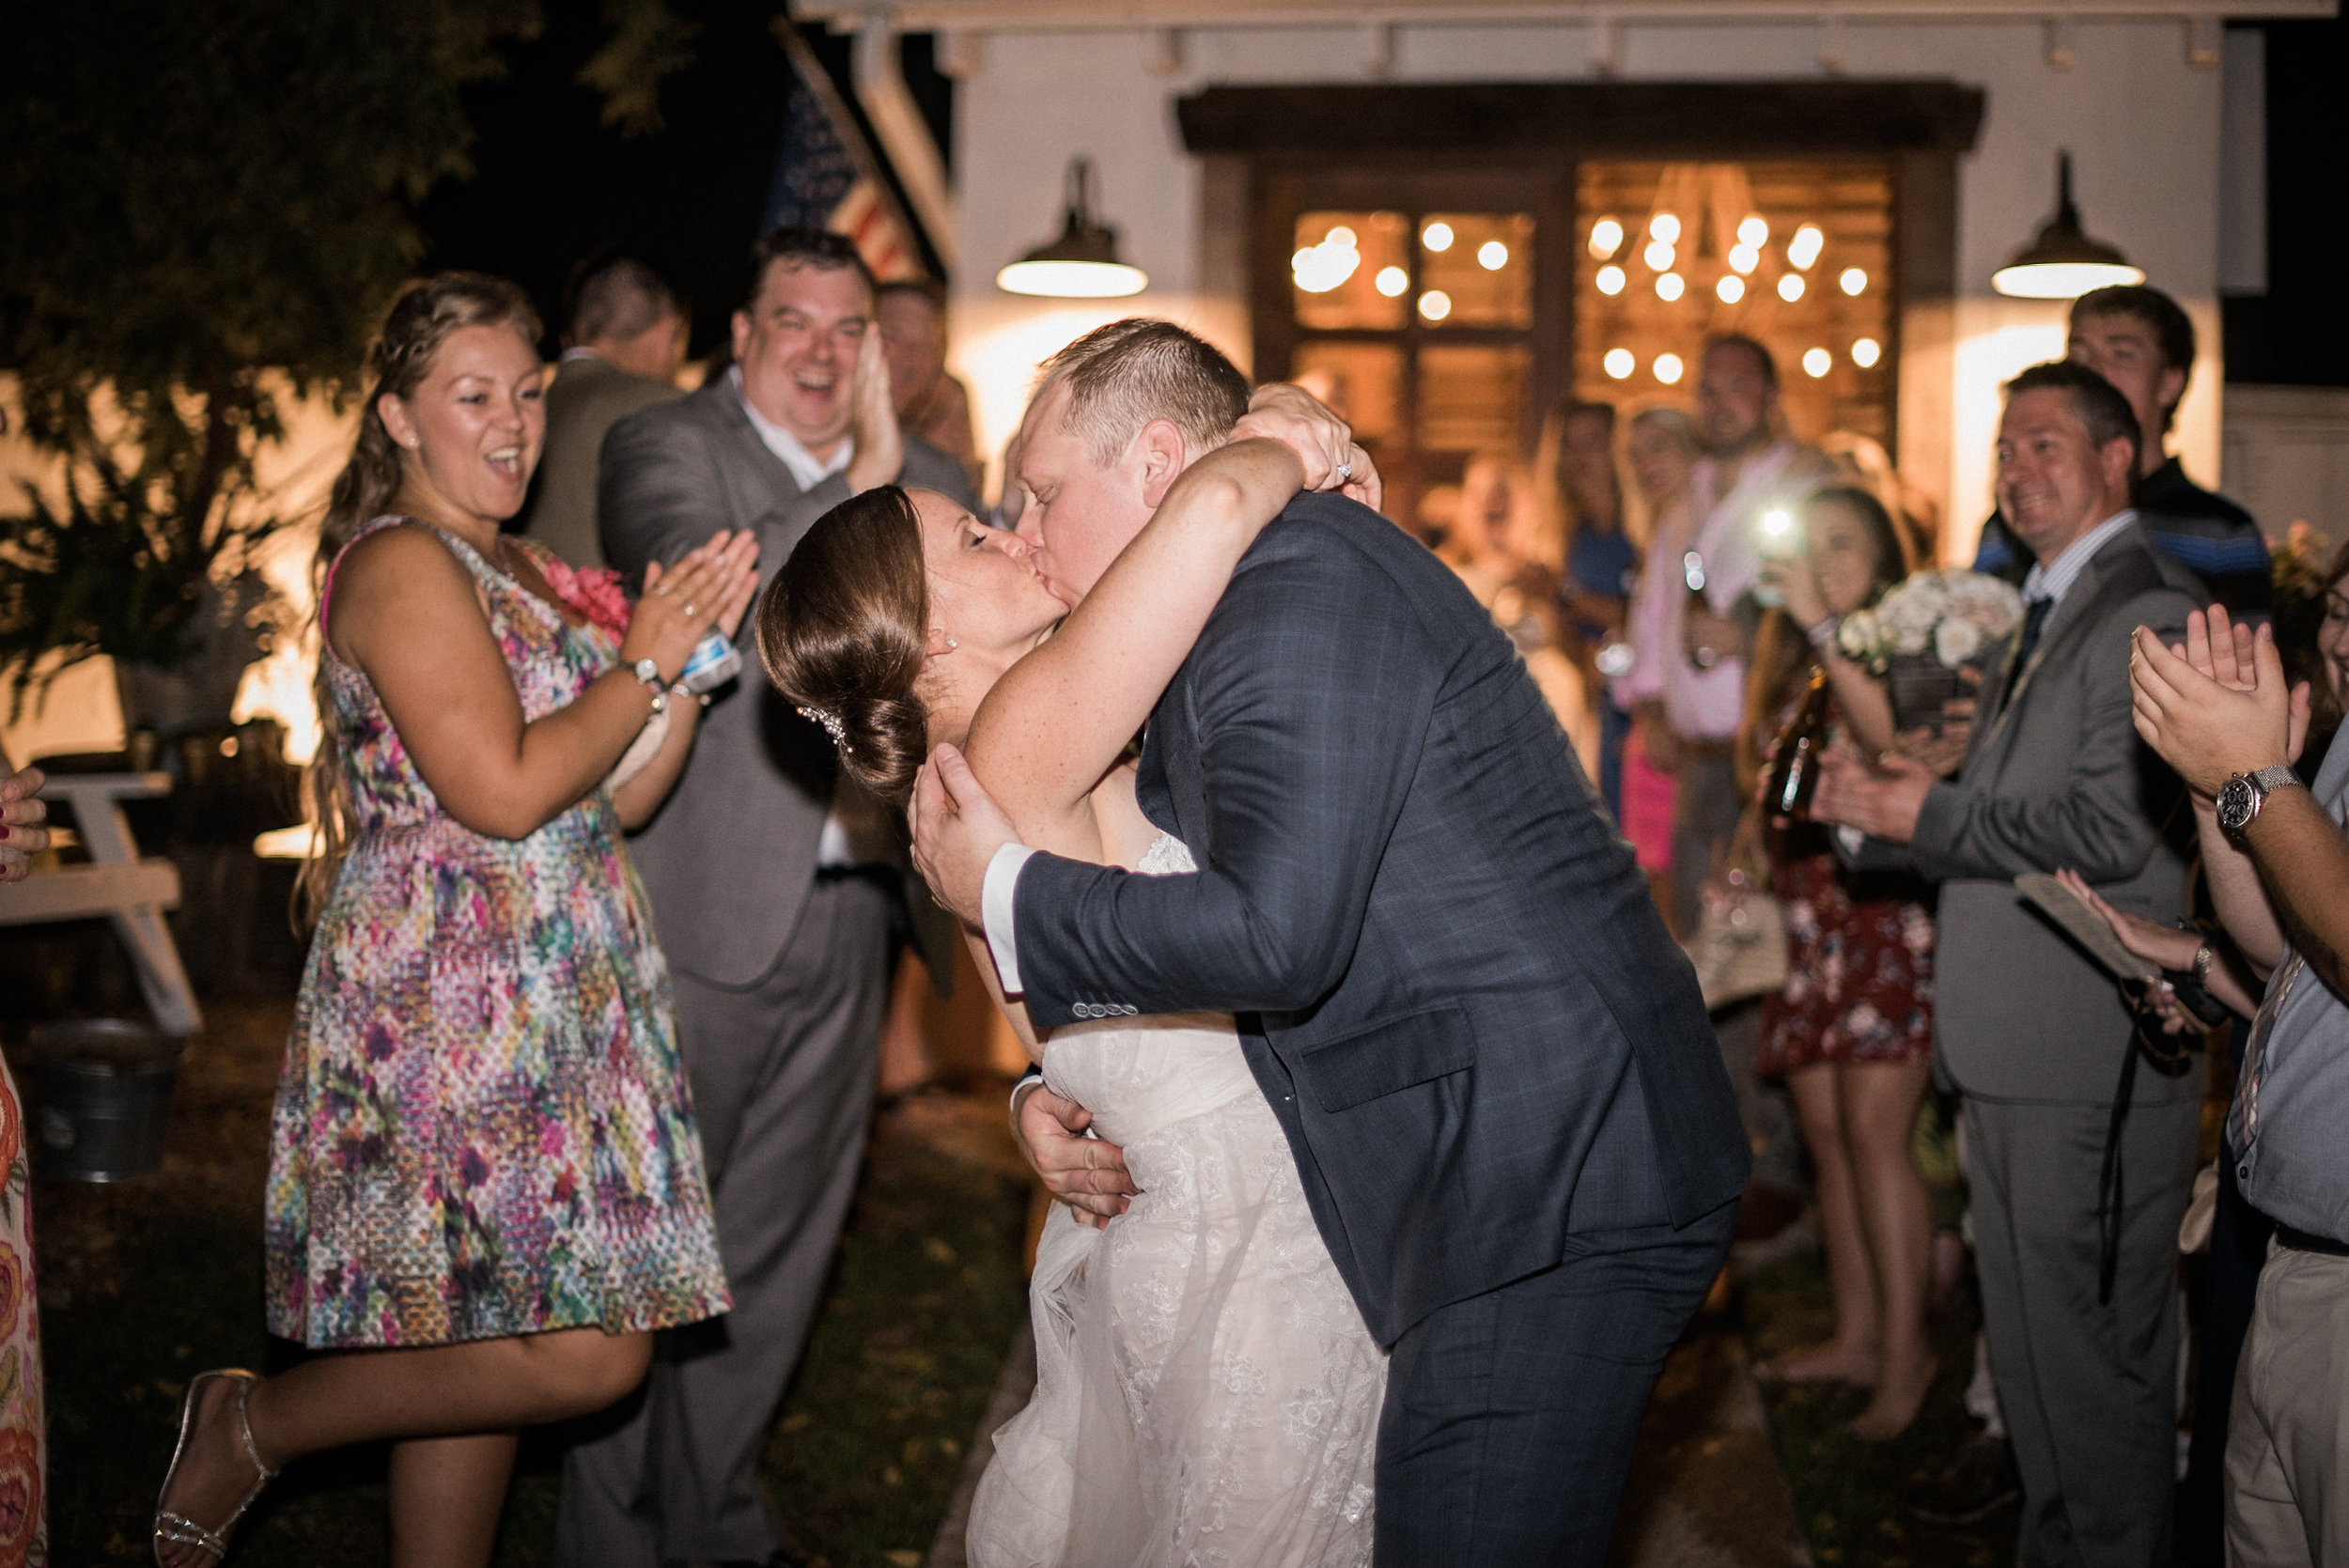 Bride and groom kissing at end of night